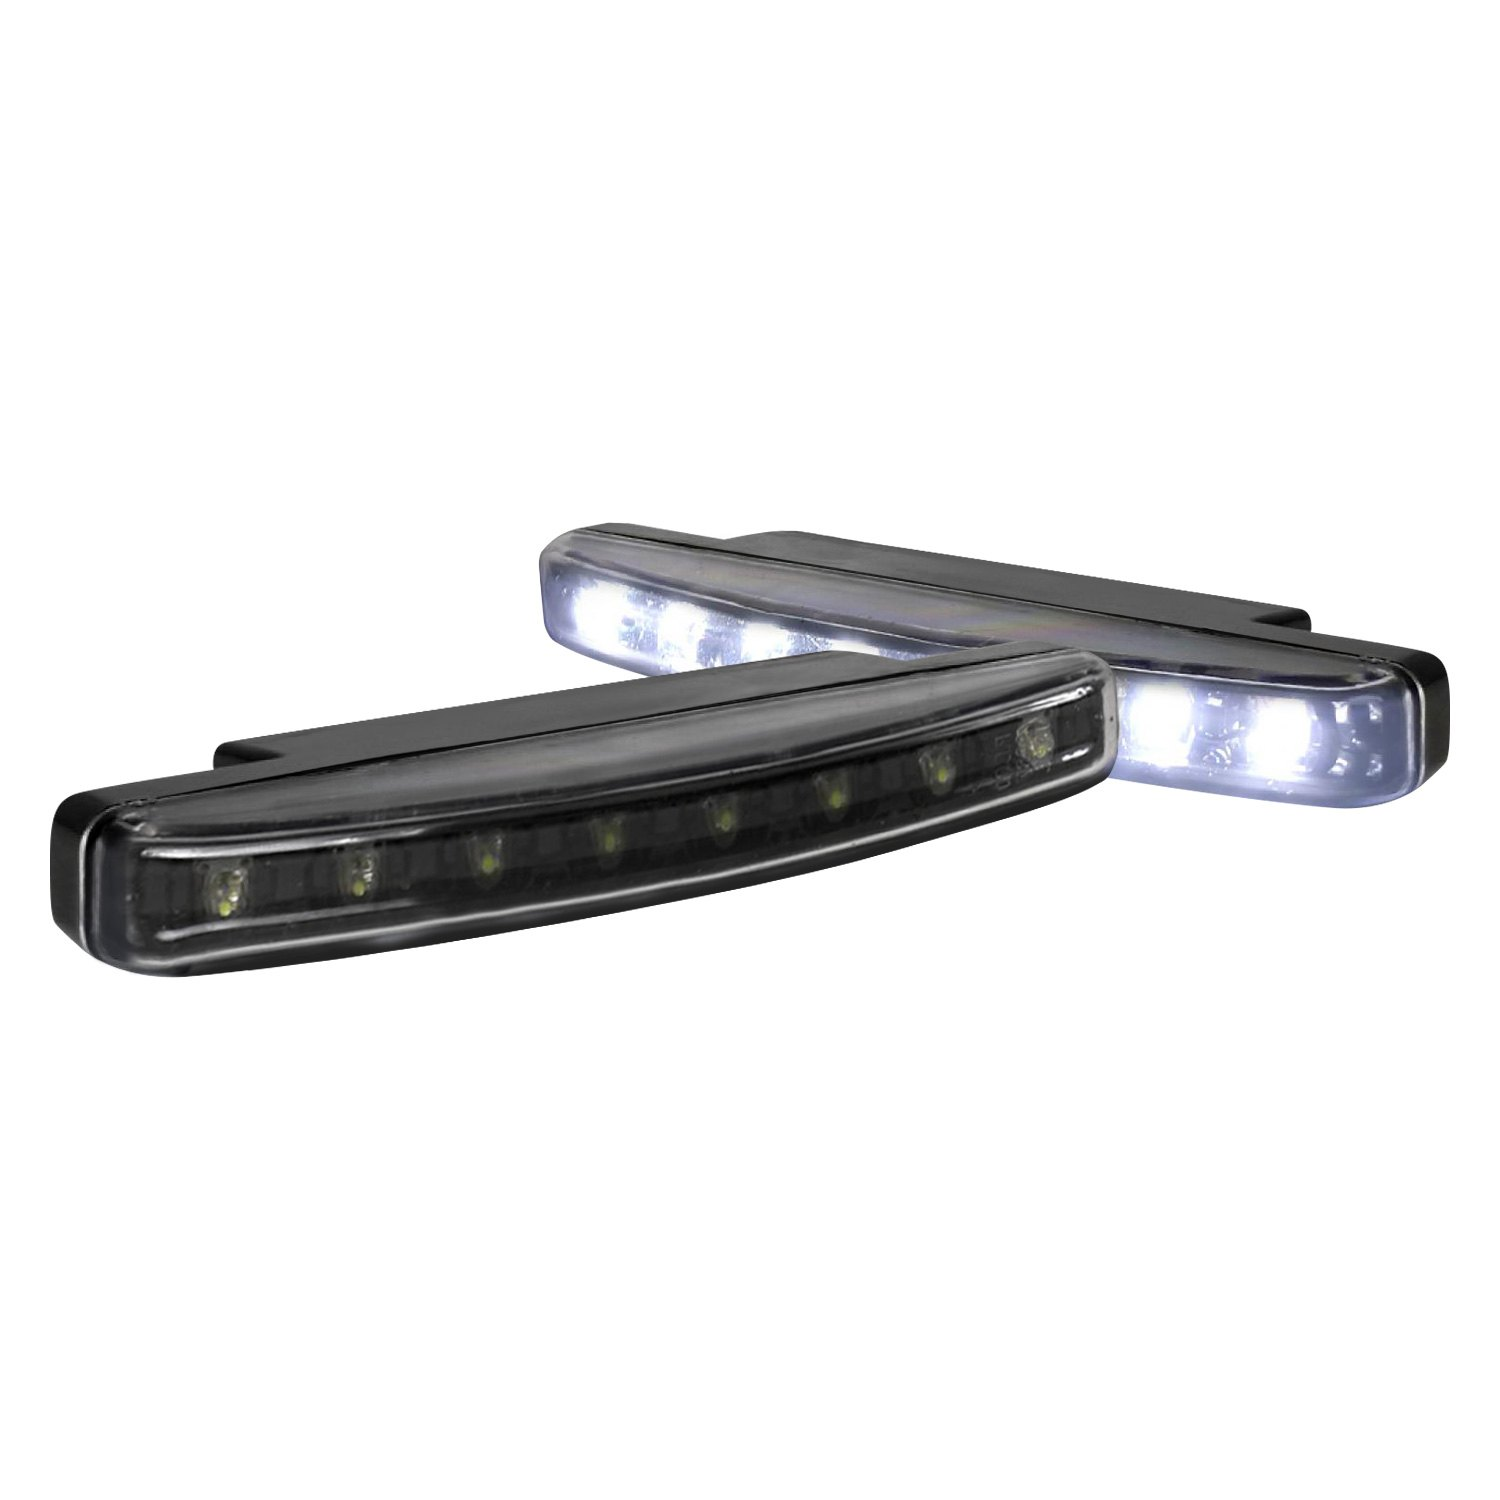 spec d lf 108ledjm wt 158mm led daytime running light kit. Black Bedroom Furniture Sets. Home Design Ideas